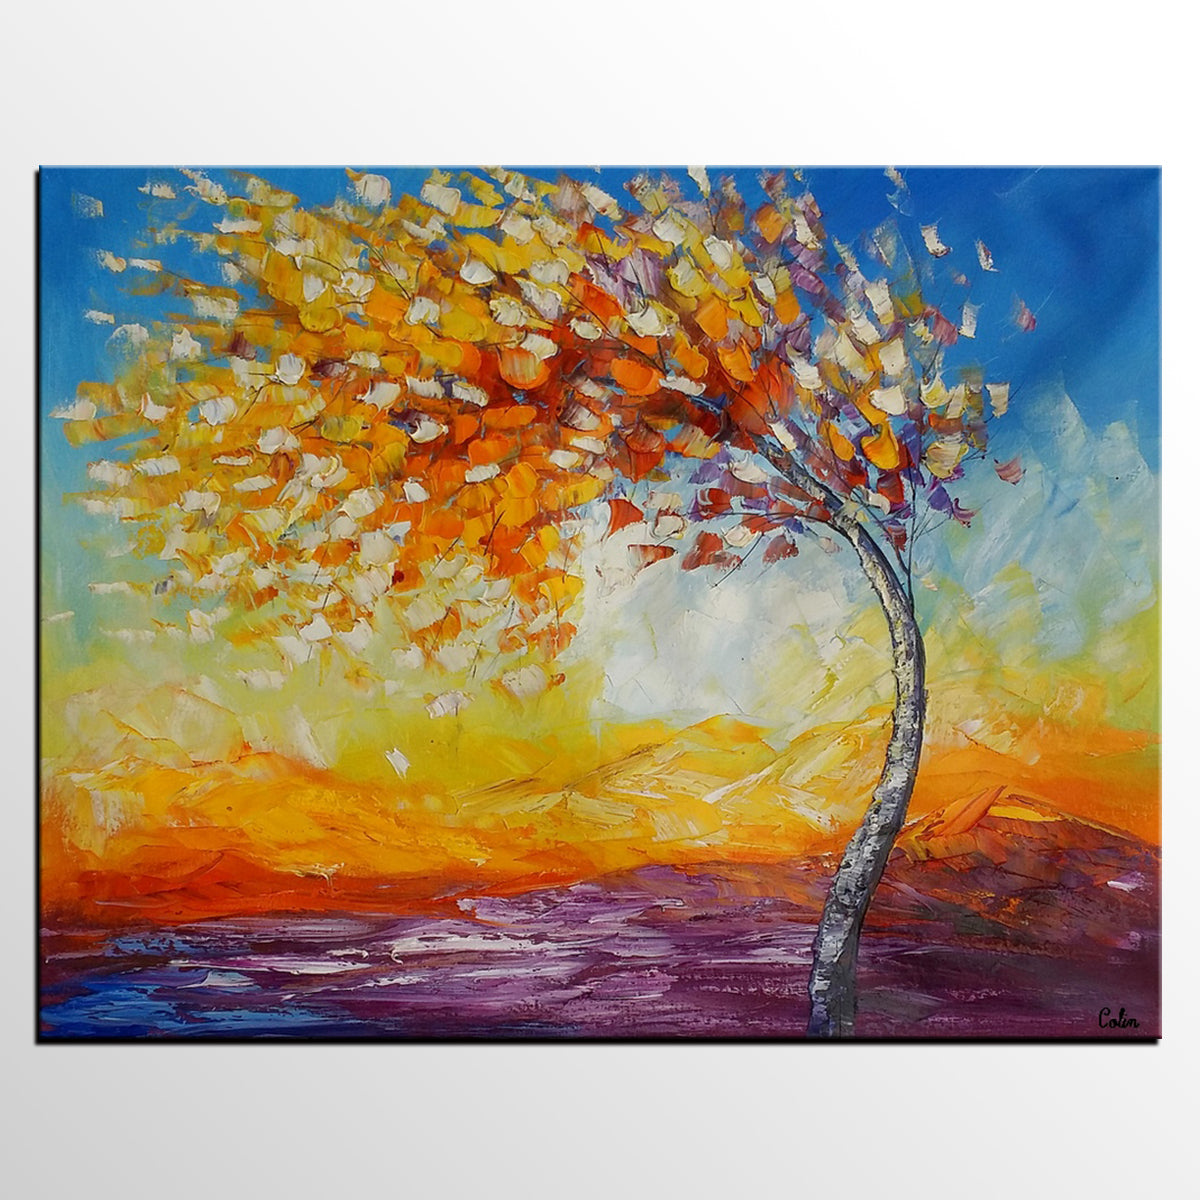 Landscape Painting, Autumn Tree Painting, Oil Painting, Canvas Artwork, Original Painting - artworkcanvas